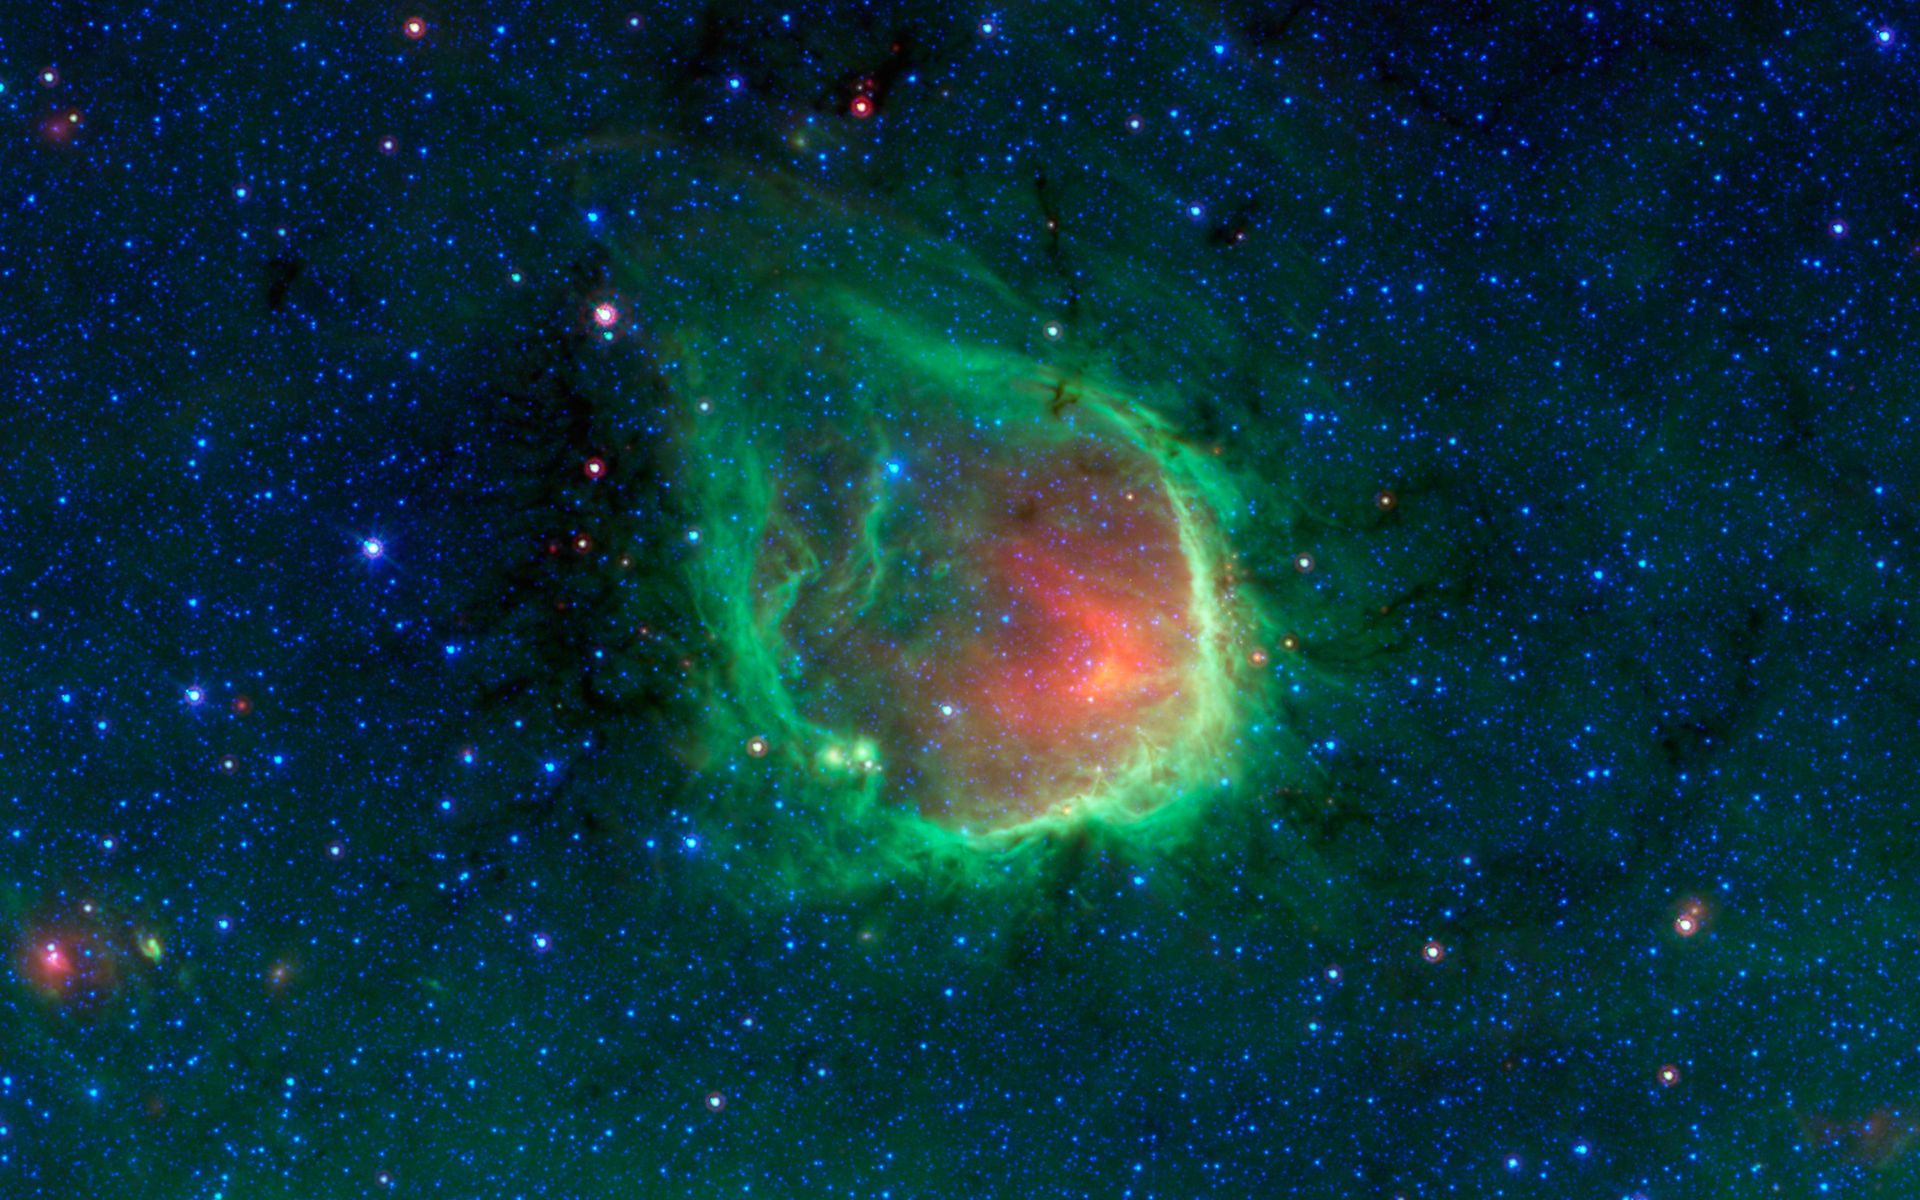 Space images in the blackest night a green ring nebula - Spitzer space telescope wallpaper ...